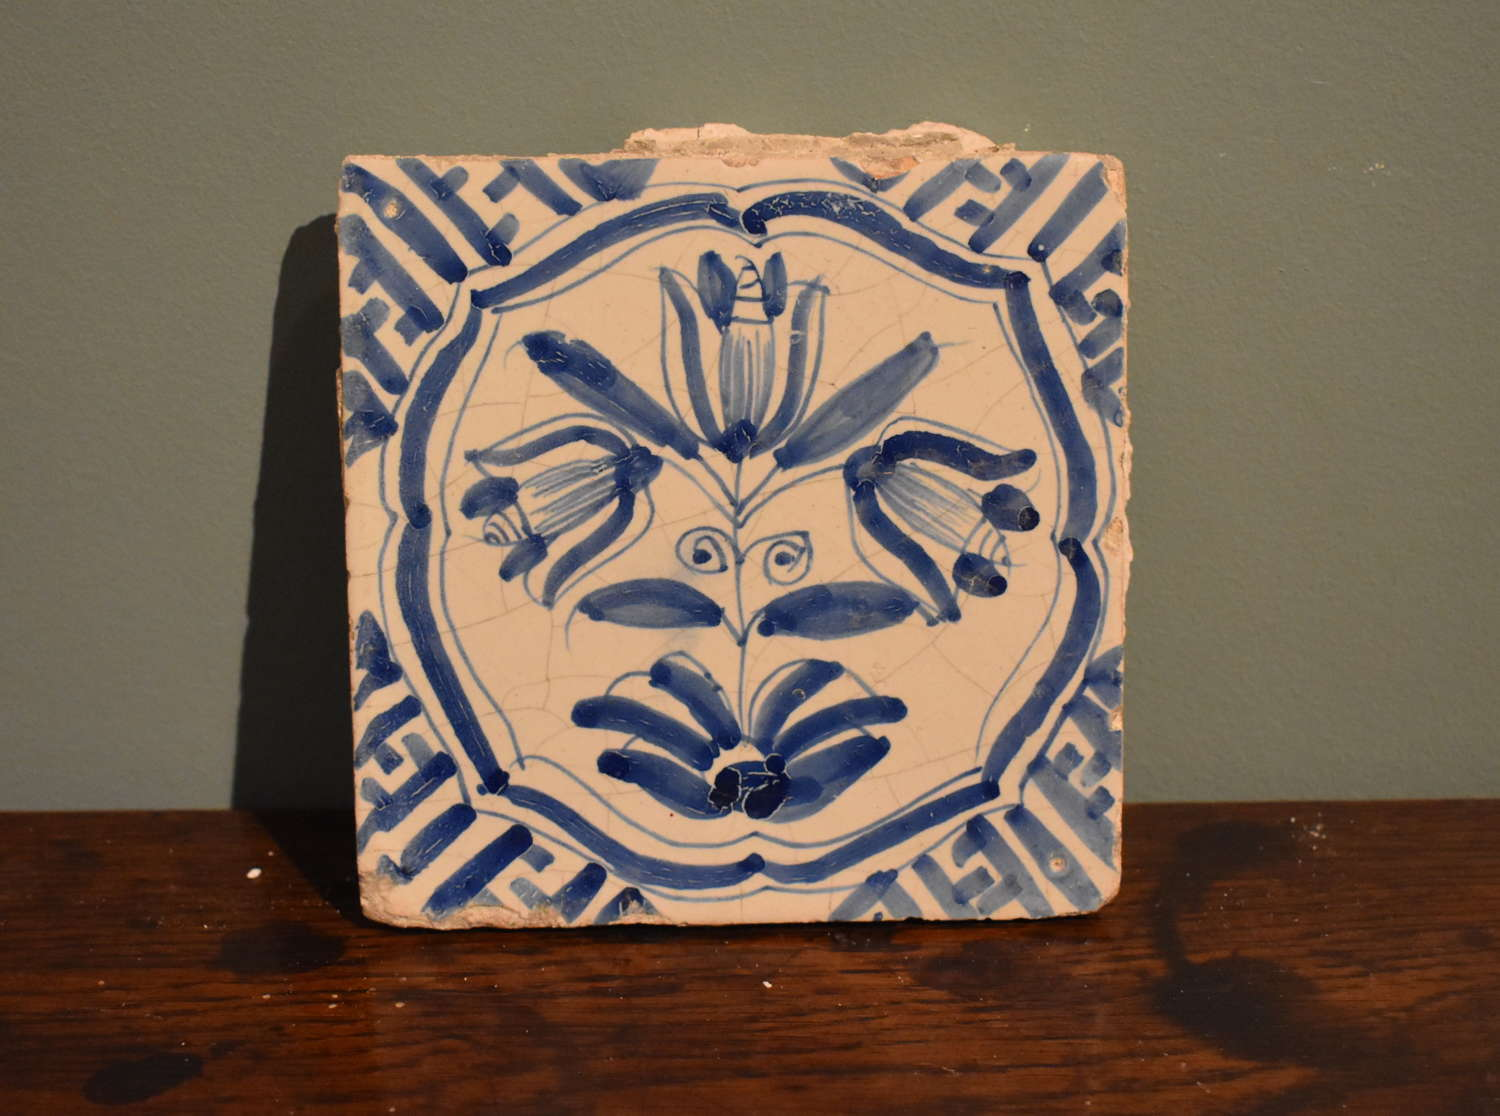 17th c. Dutch Delft 'Accolade' tile with Wanli corners